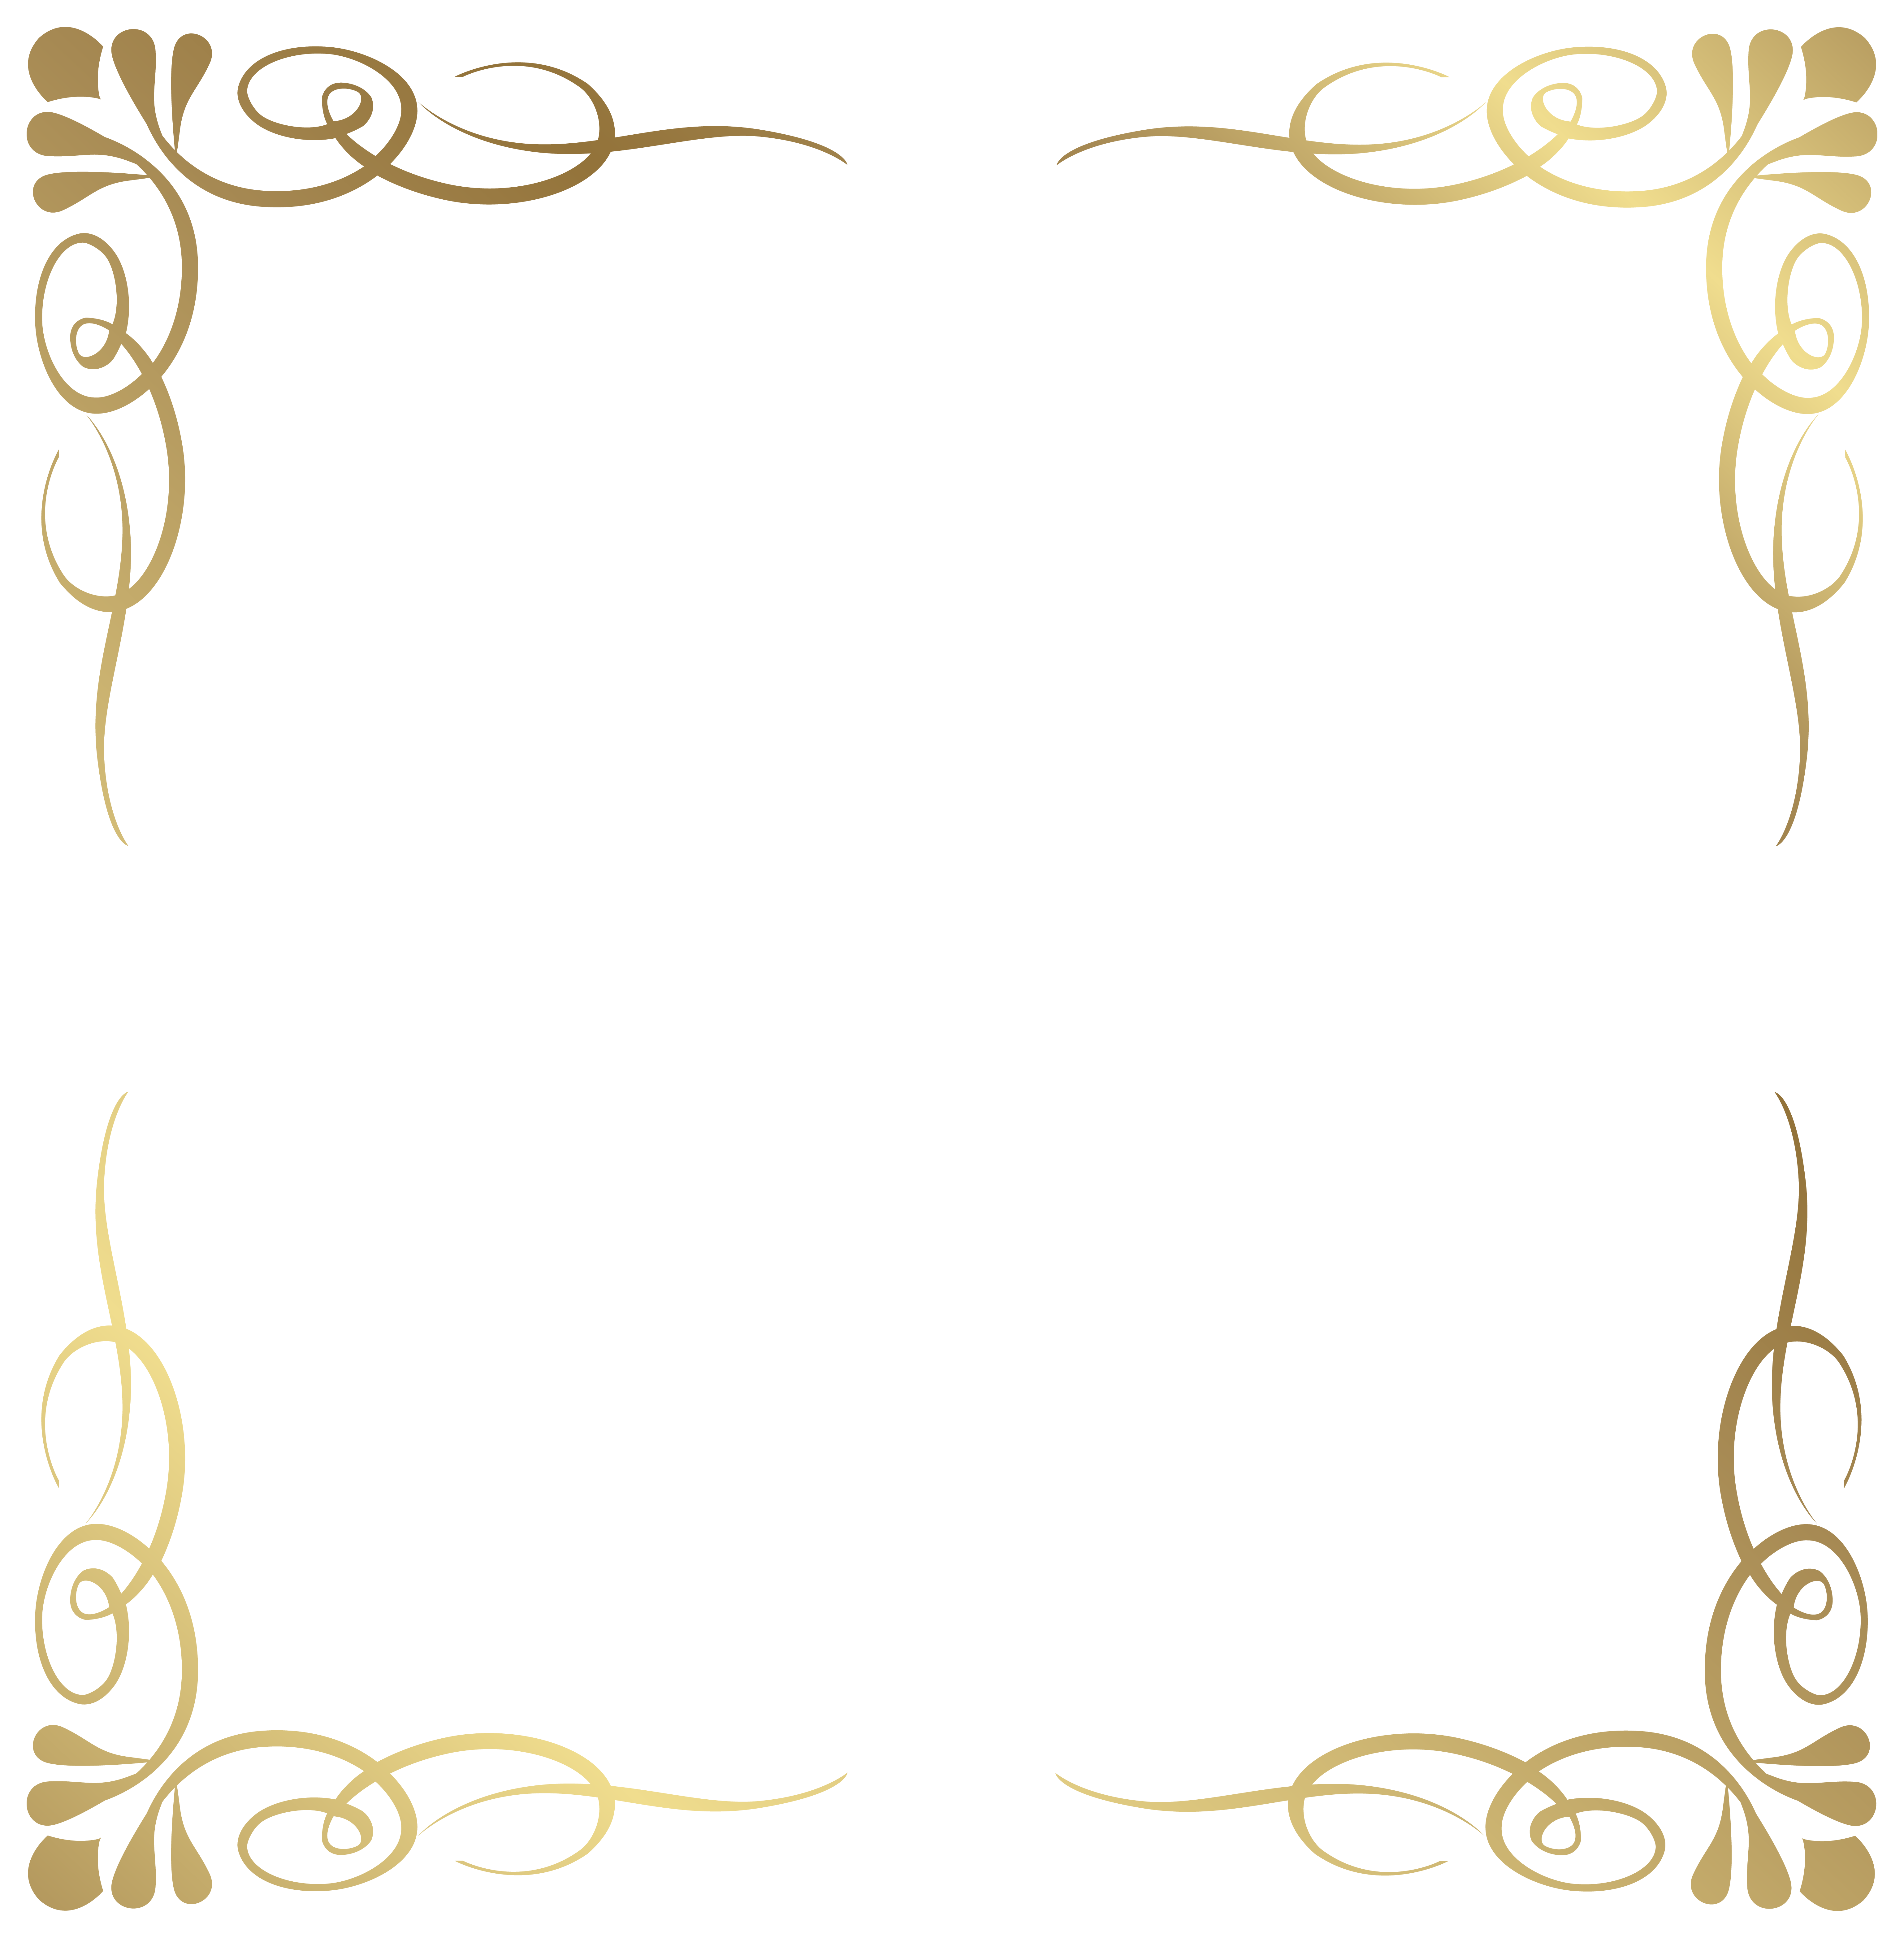 Fancy crown border clipart clip Transparent Decorative Frame Border PNG Image | Gallery ... clip